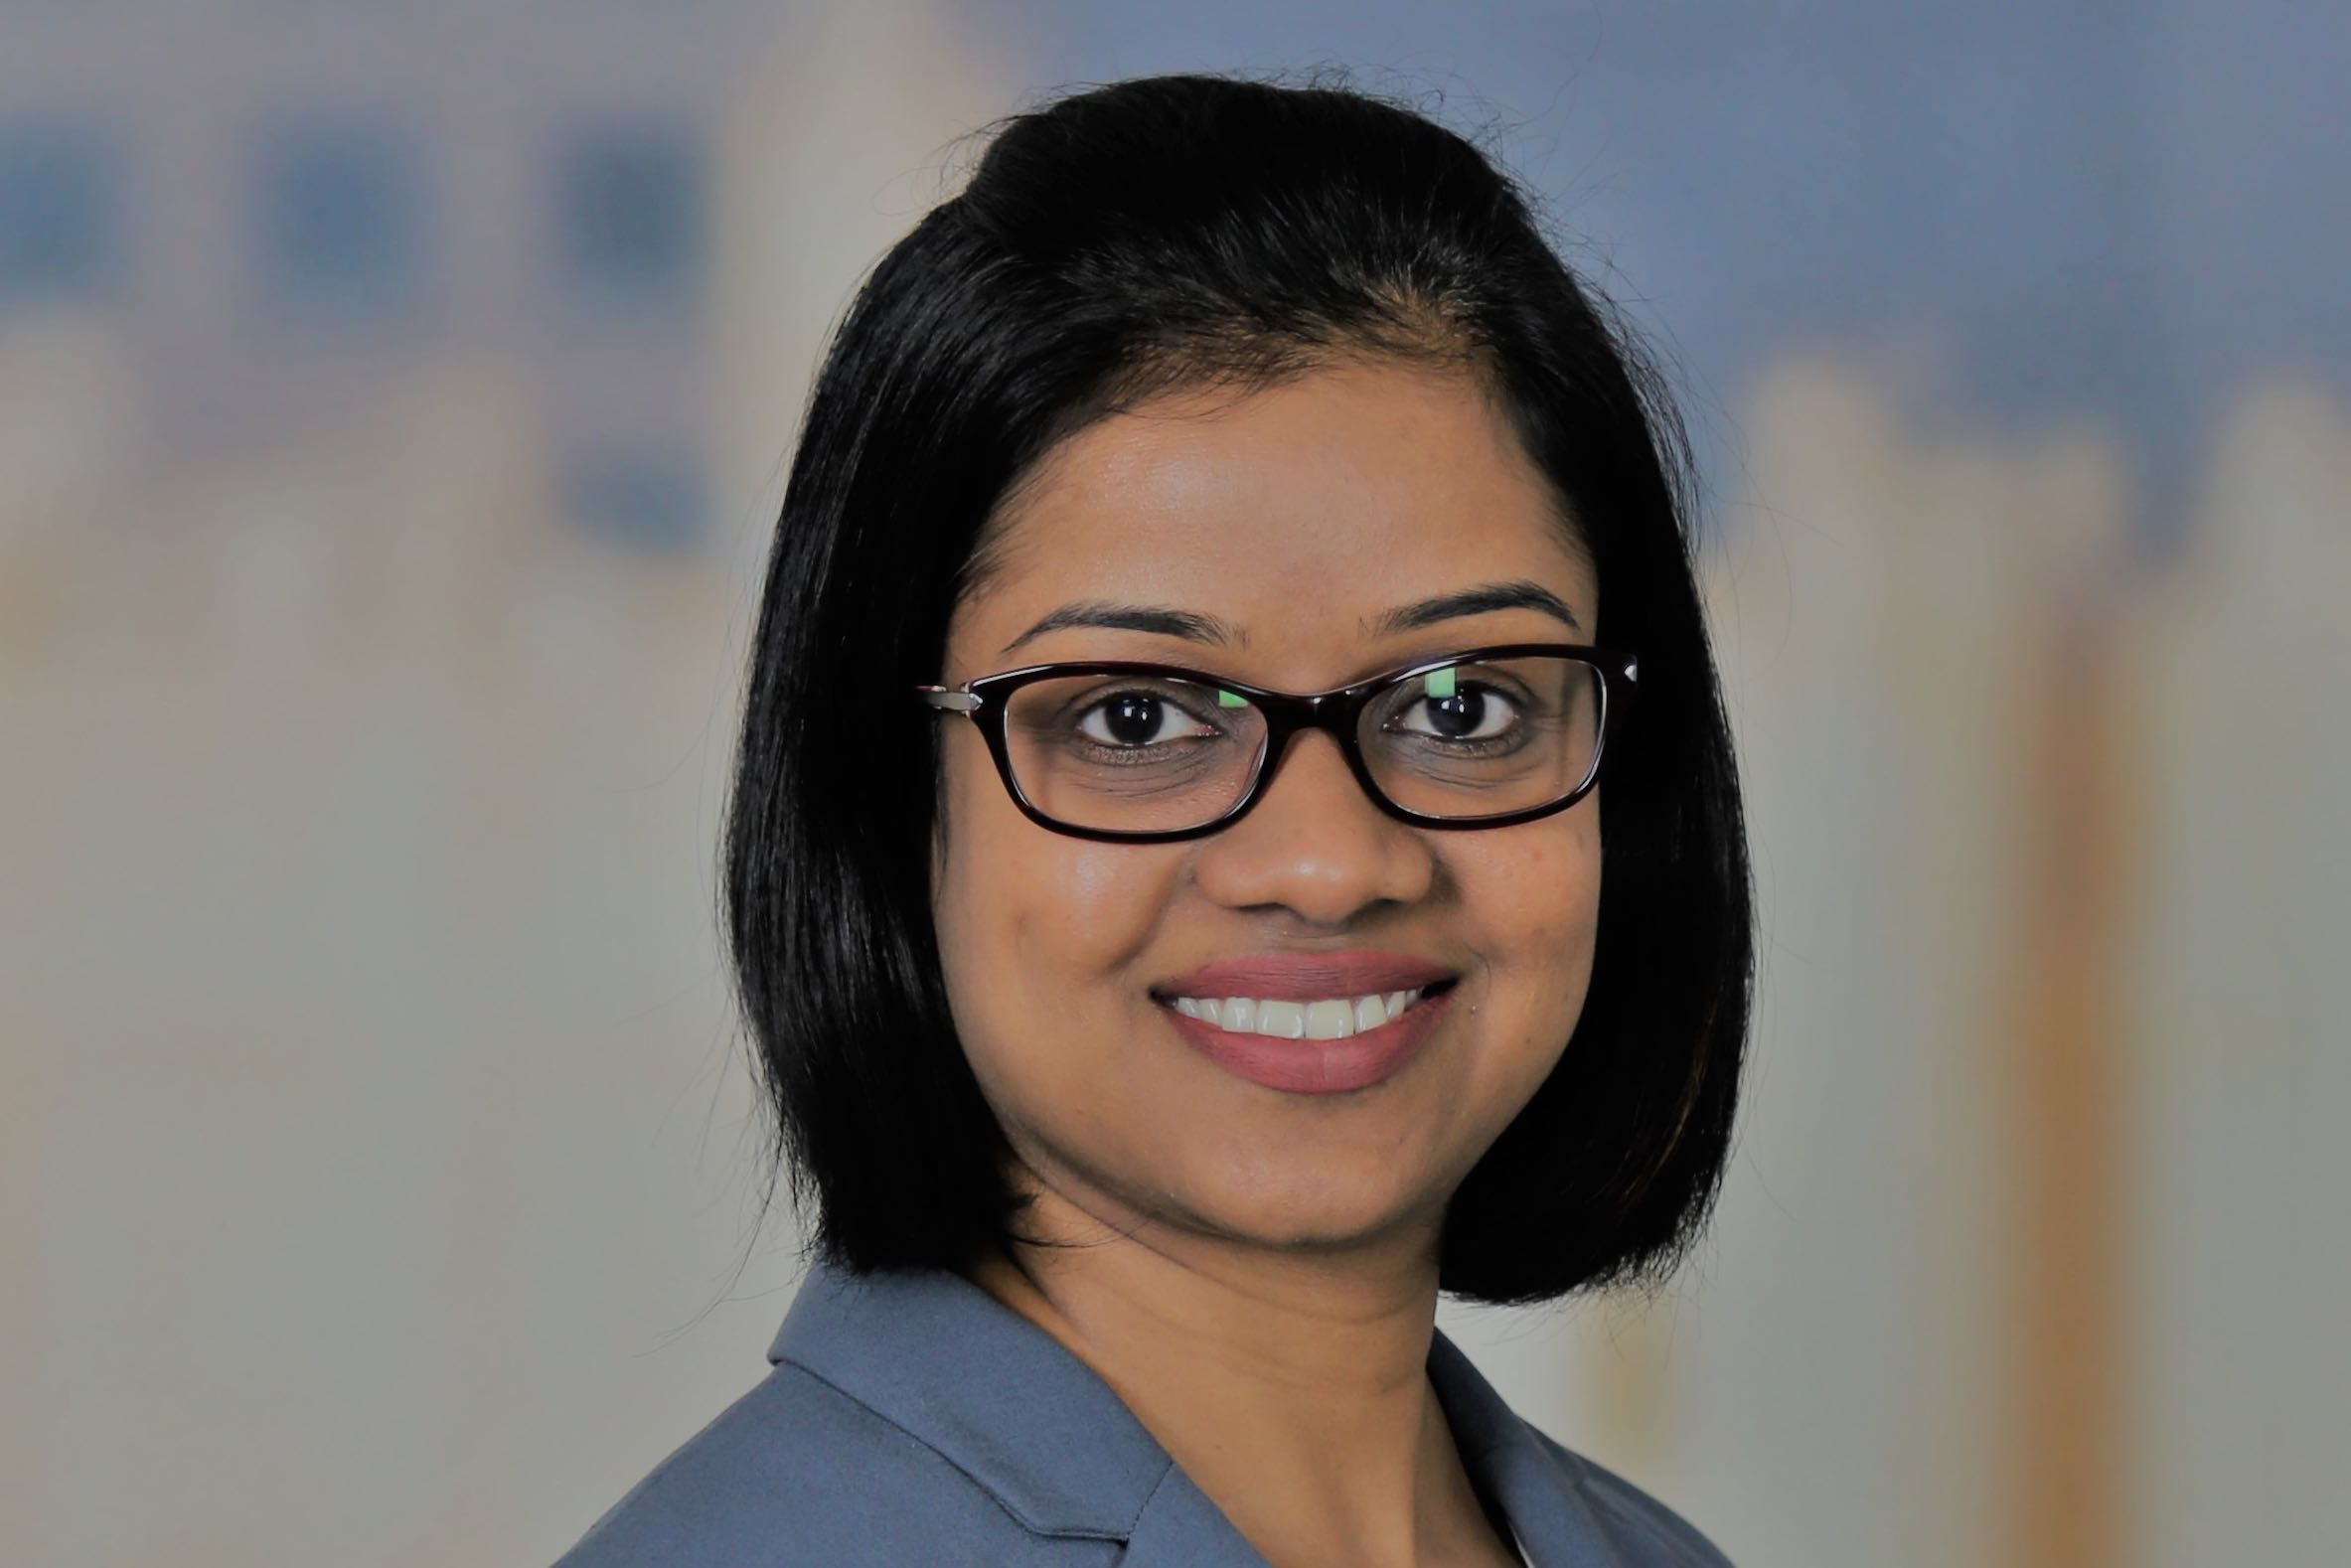 The 2019 Women Leaders in Consulting: Vidisha Suman